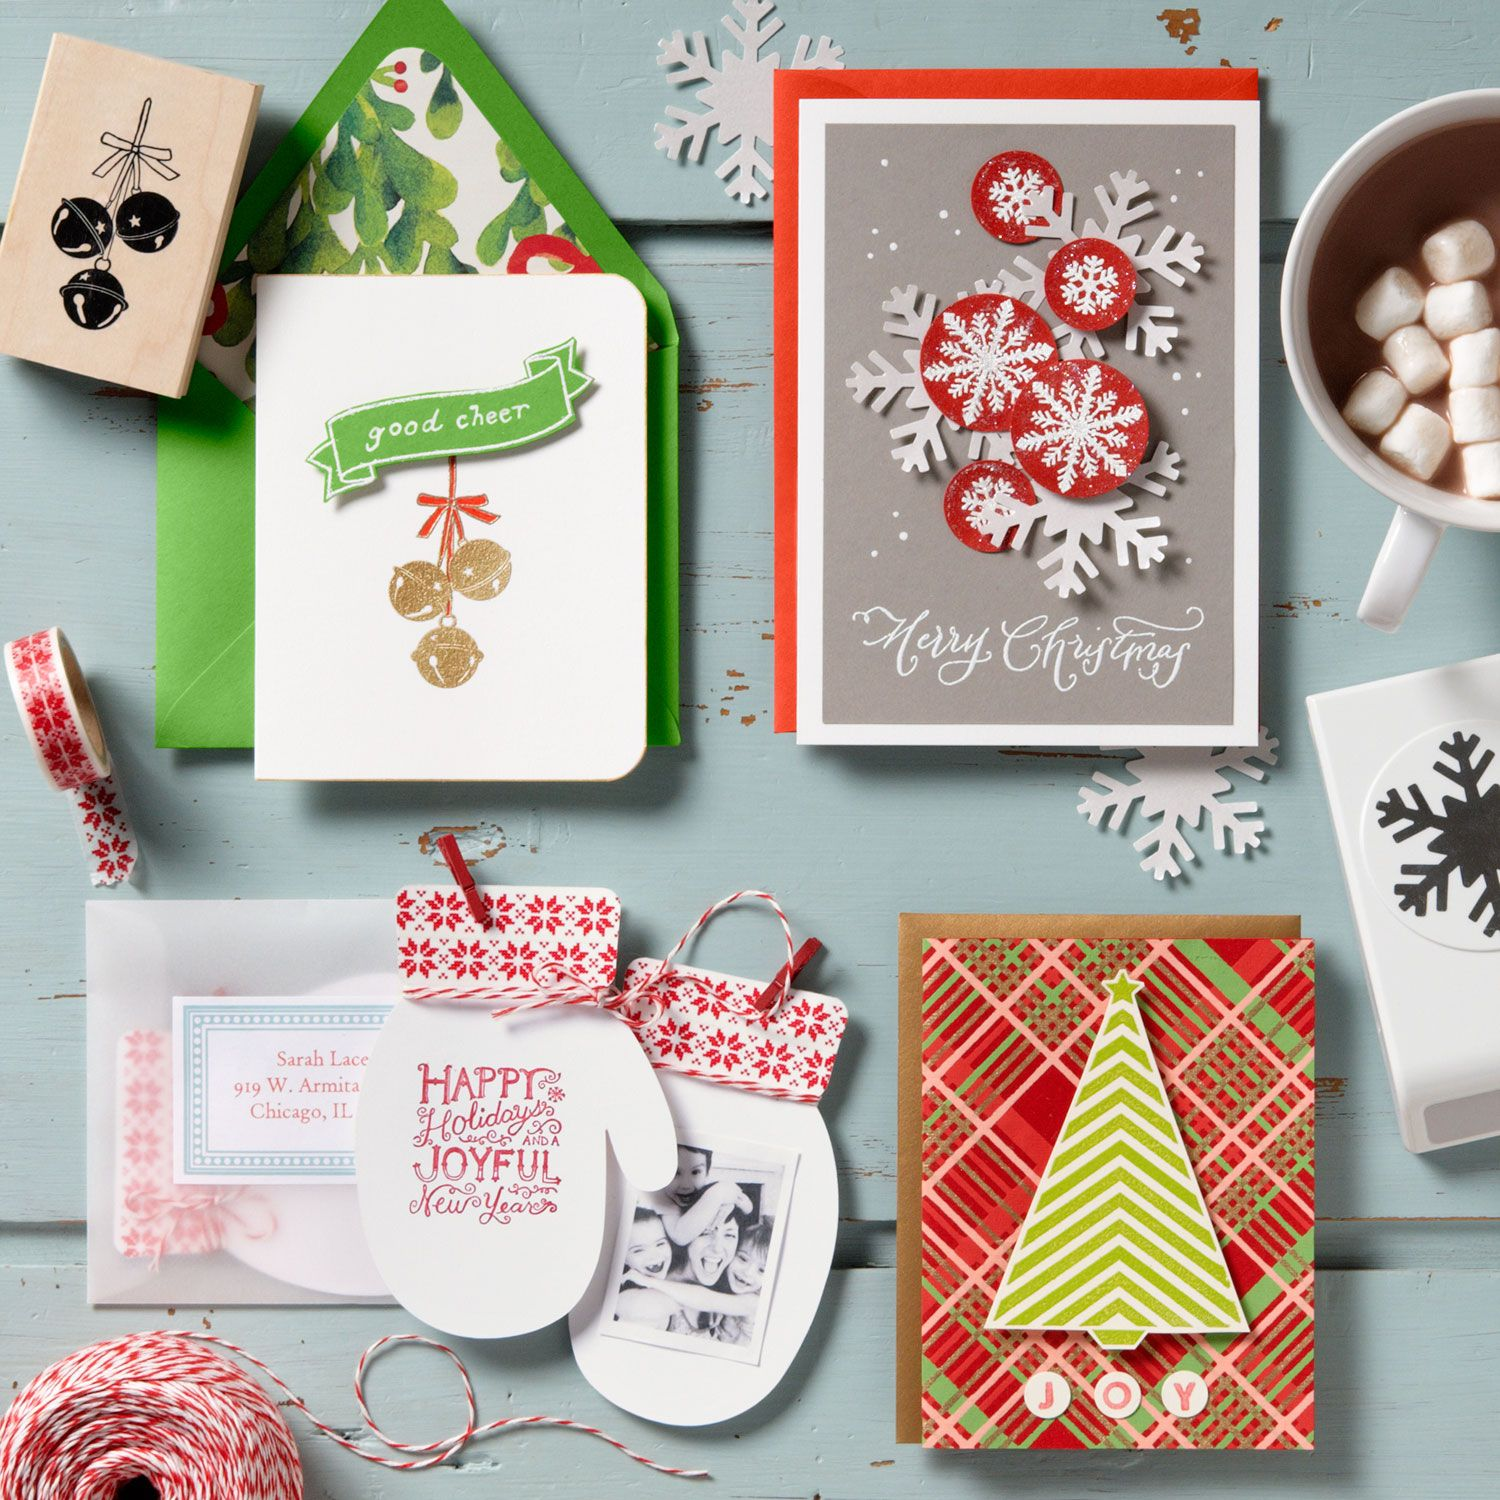 Holiday Card Making Crafter's Night Out | Crafting | Pinterest ...